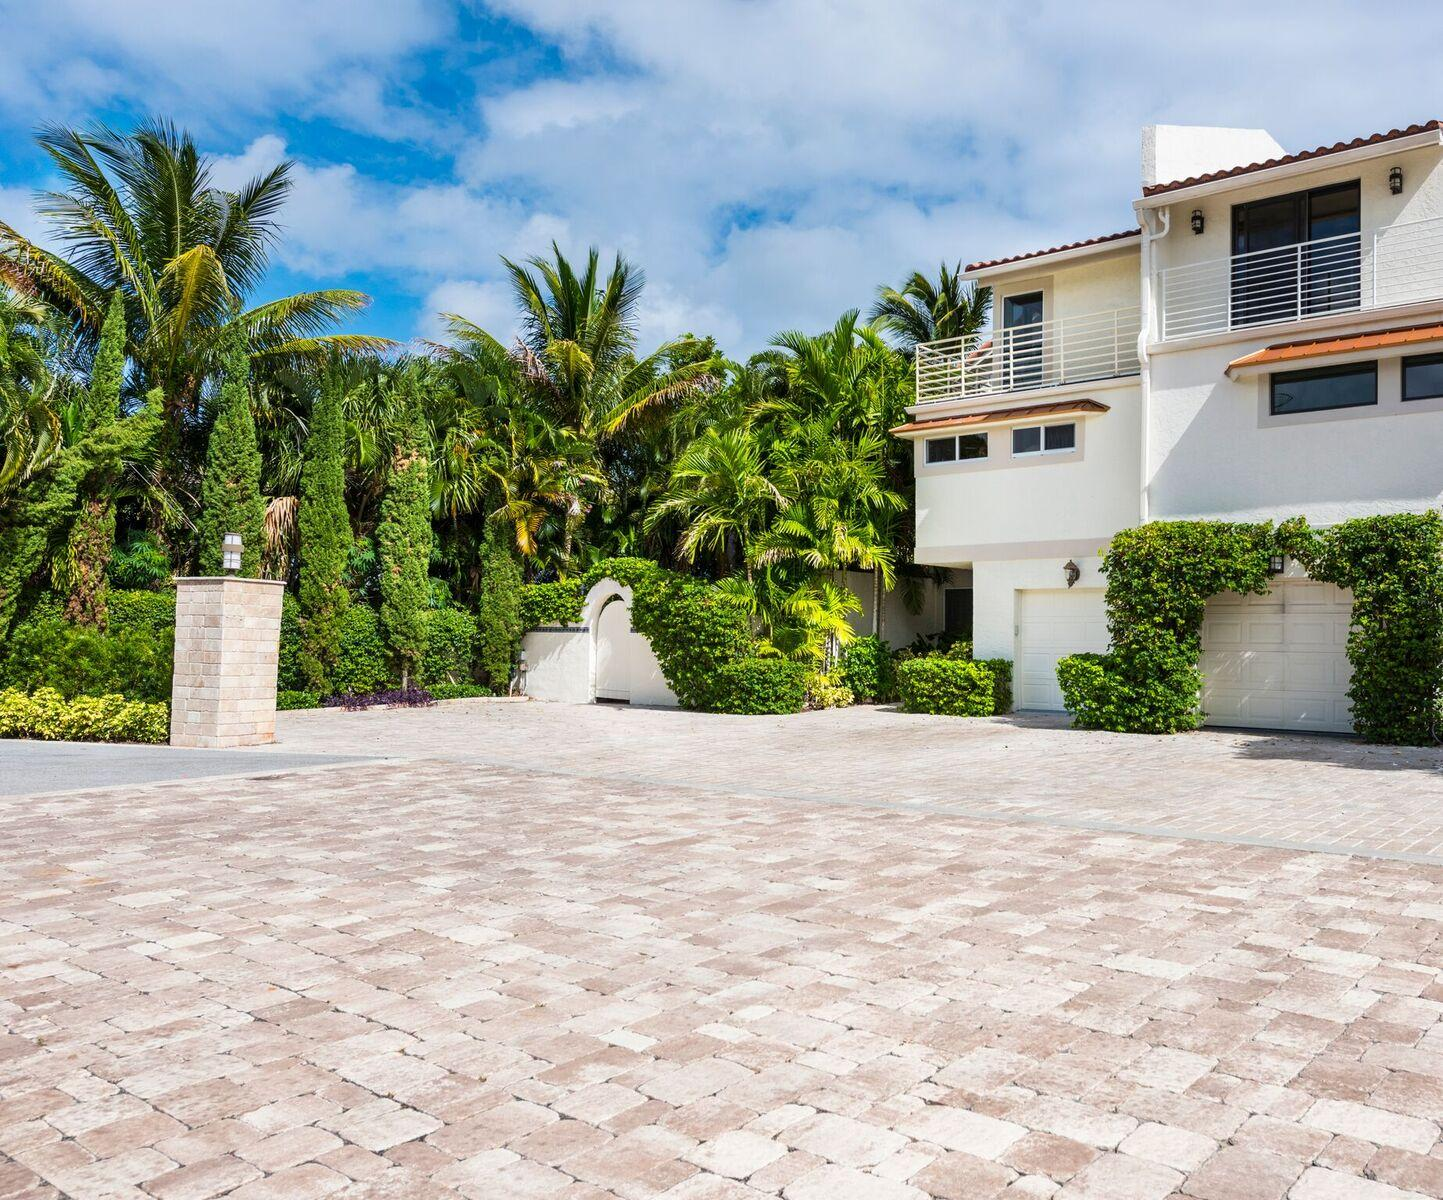 628 5th Street, Delray Beach, Florida 33483, 3 Bedrooms Bedrooms, ,2.1 BathroomsBathrooms,Townhouse,For Sale,5th,RX-10485402